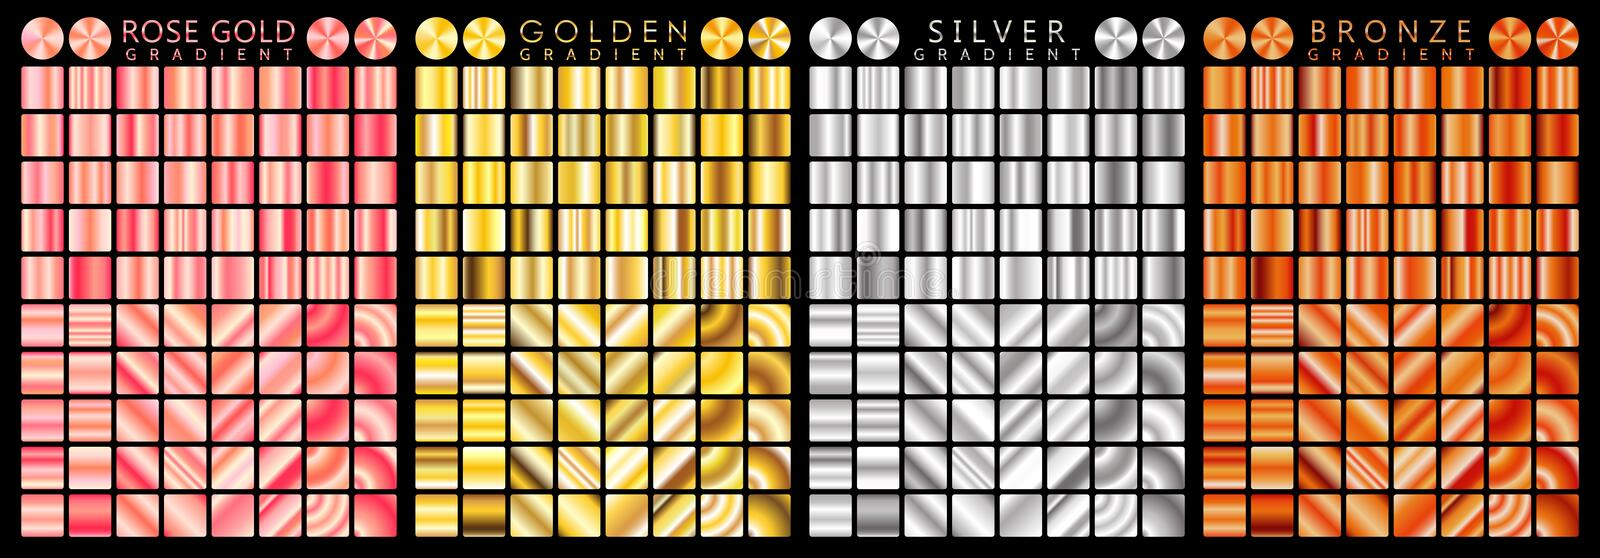 Rose gold, golden, silver, bronze gradient,pattern,template.Set of colors for design,collection of high quality gradients.Metallic vector illustration